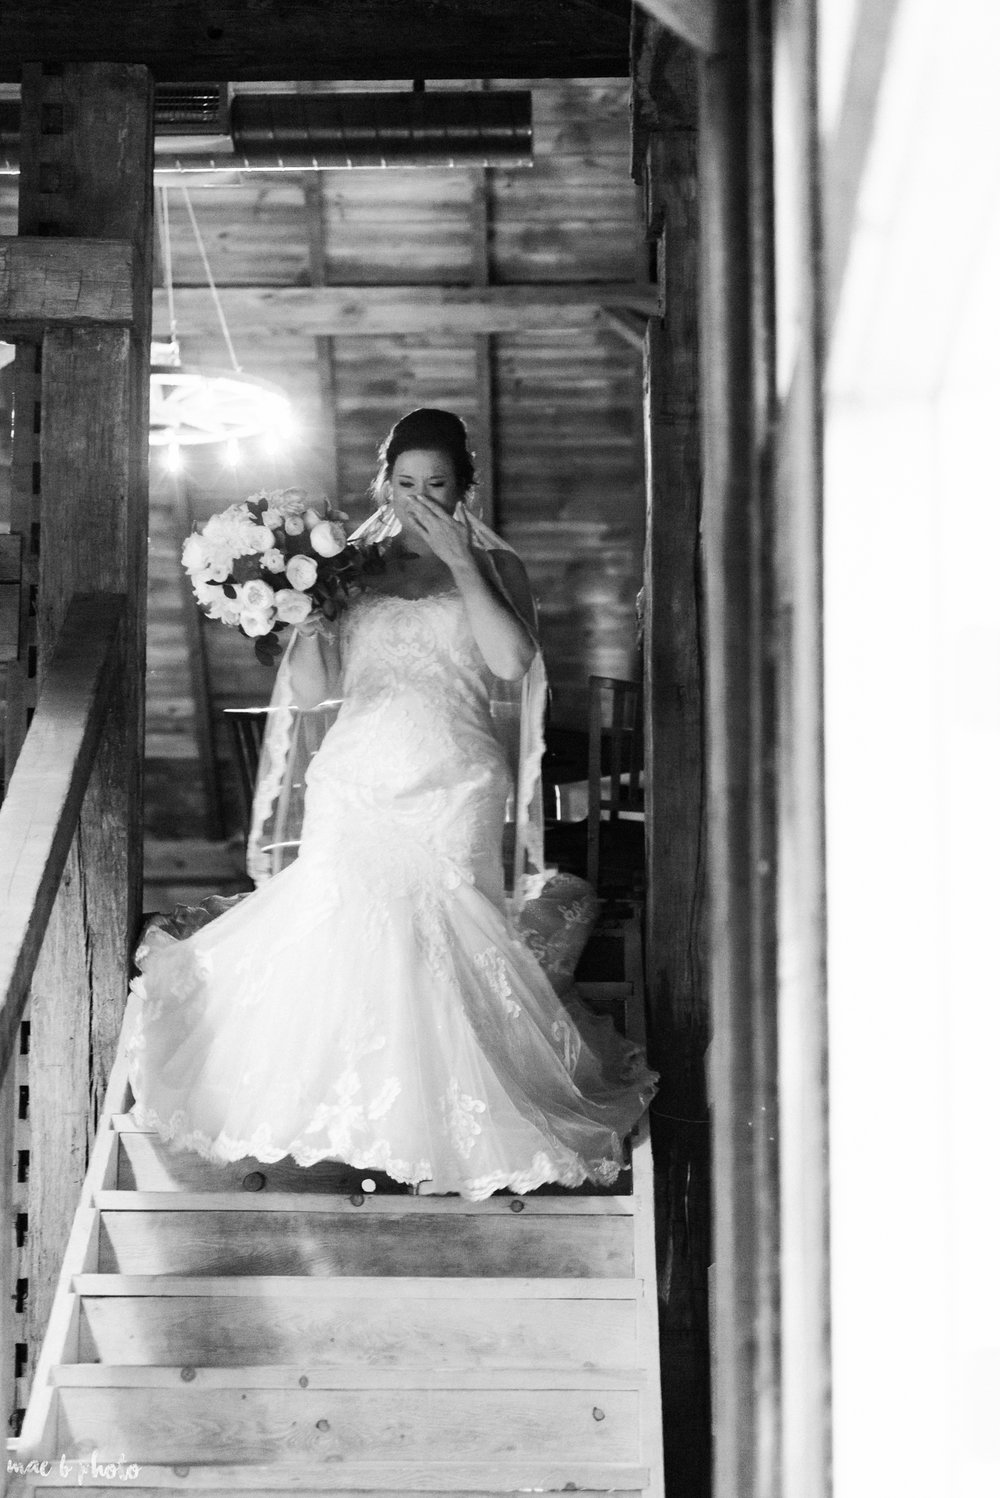 Sarah & Dustin's Rustic Chic Barn Wedding at Hartford Hill Winery in Hartford, Ohio by Mae B Photo-42.jpg